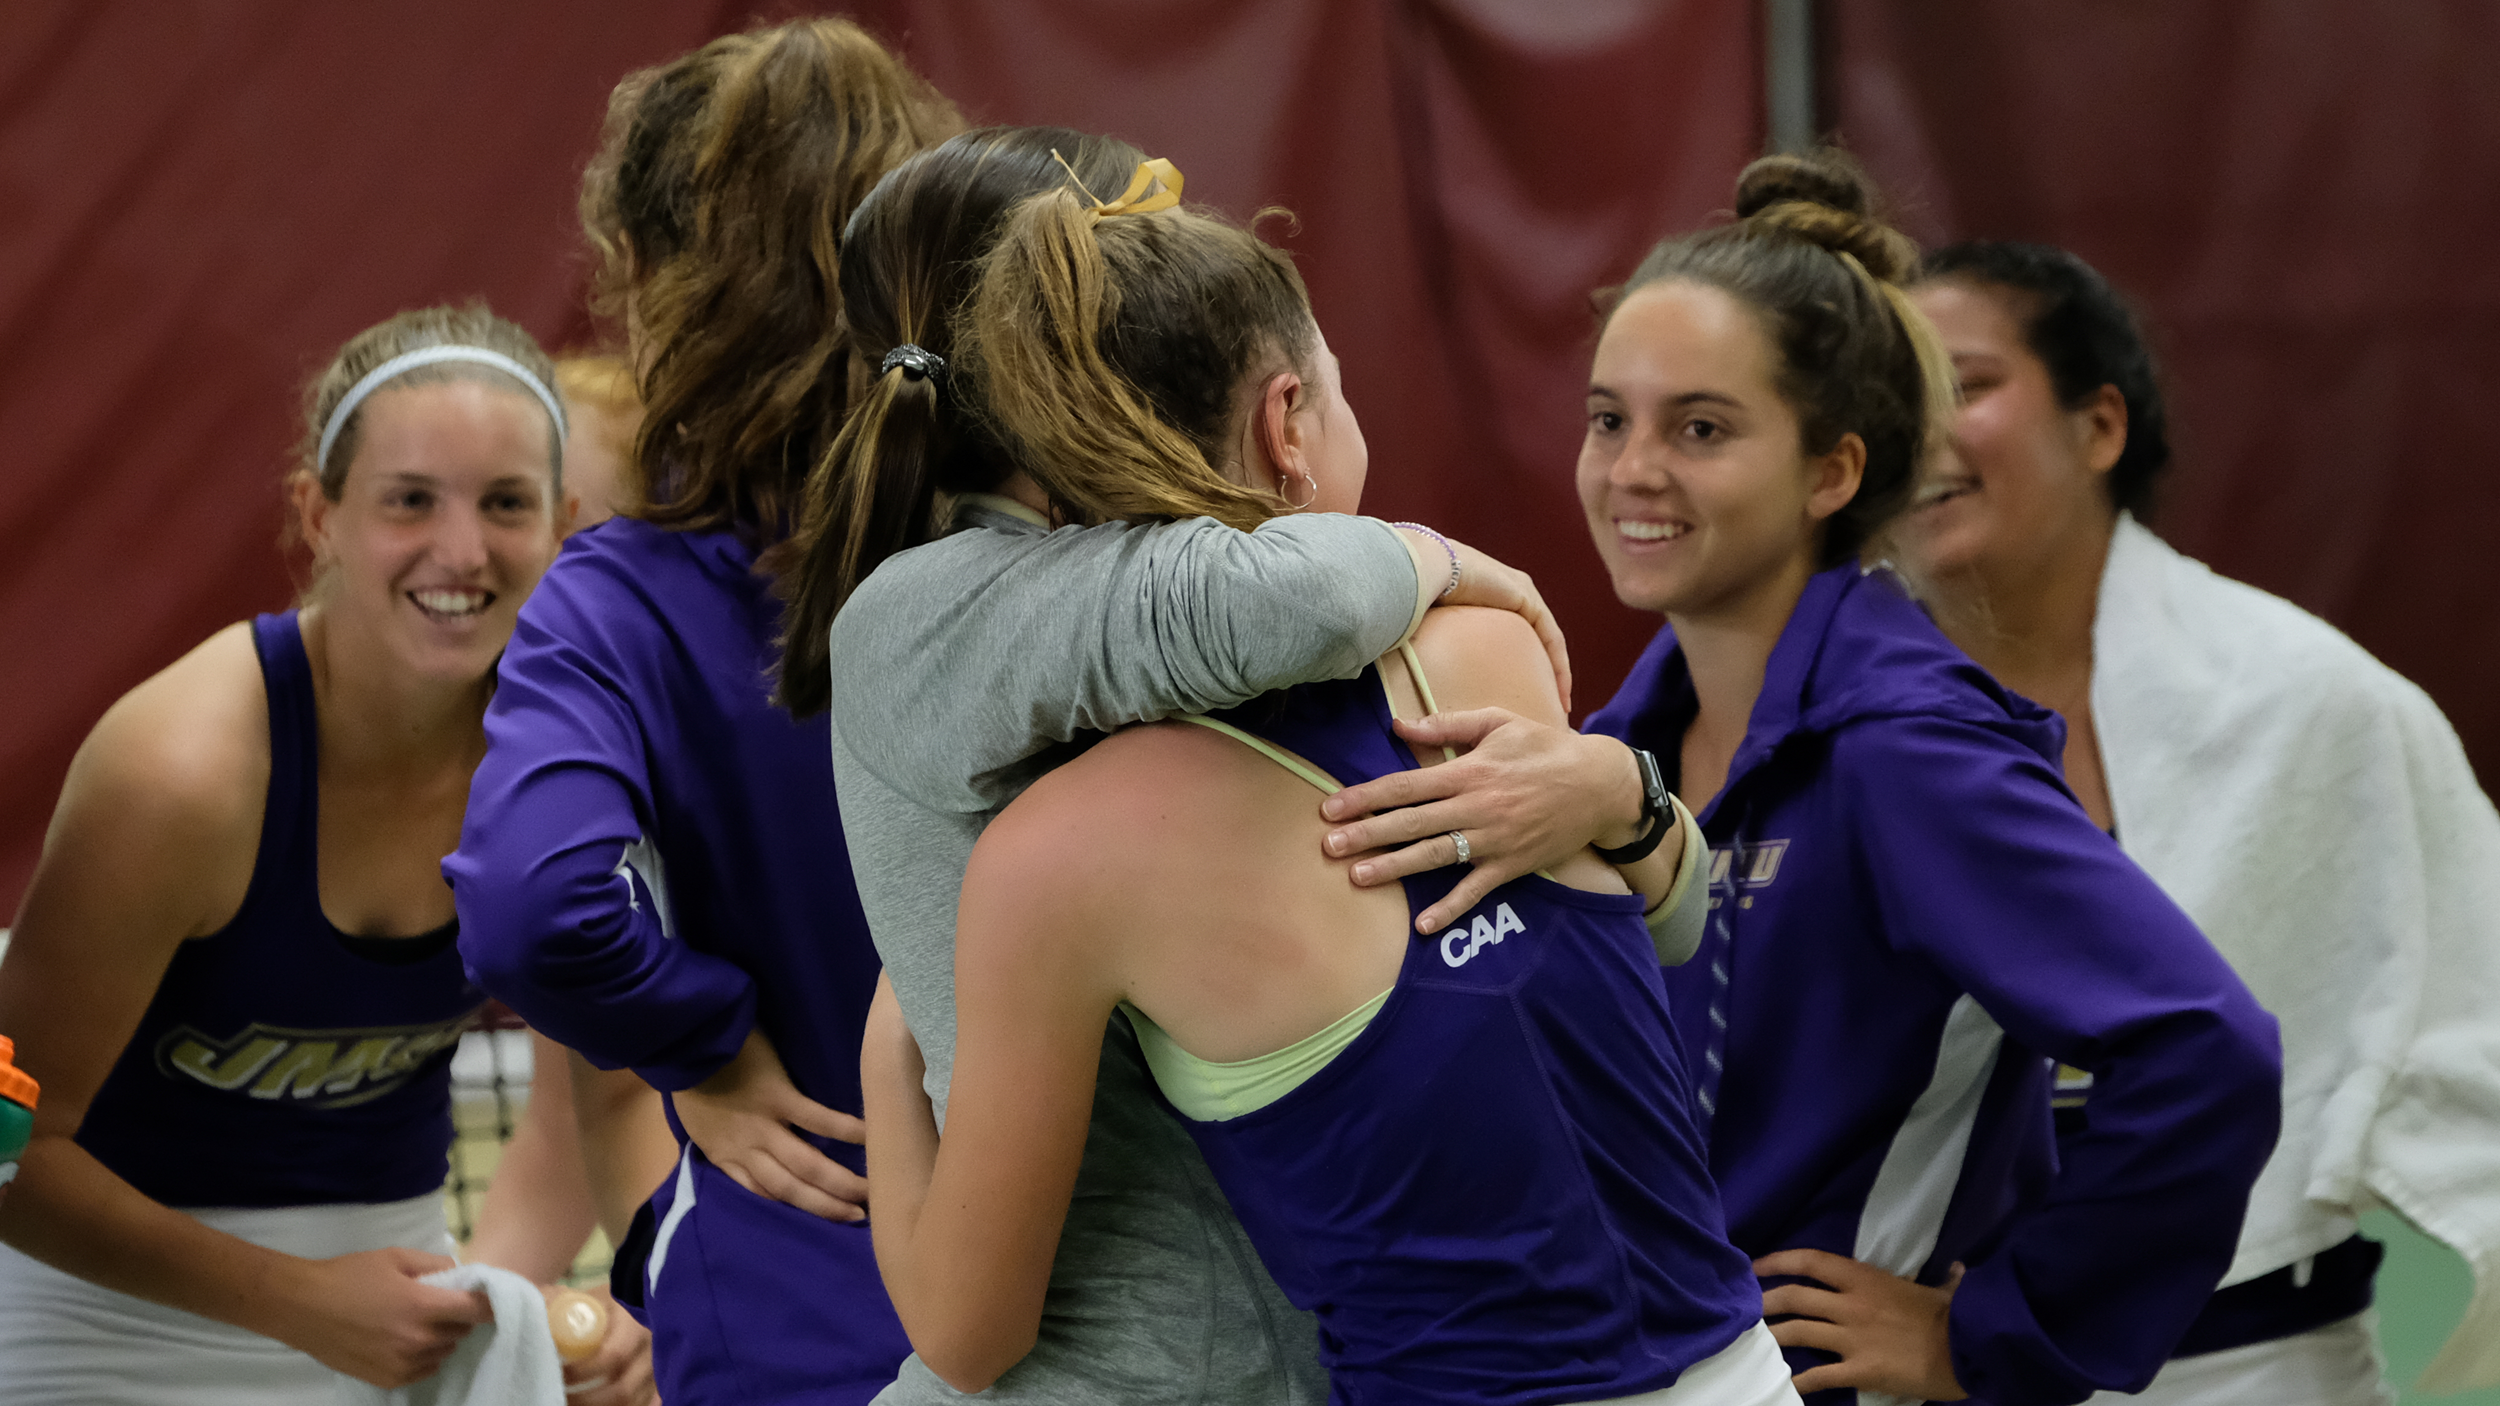 Women's Tennis: Dukes Advance to CAA Final After 4-1 Win vs. Cougars